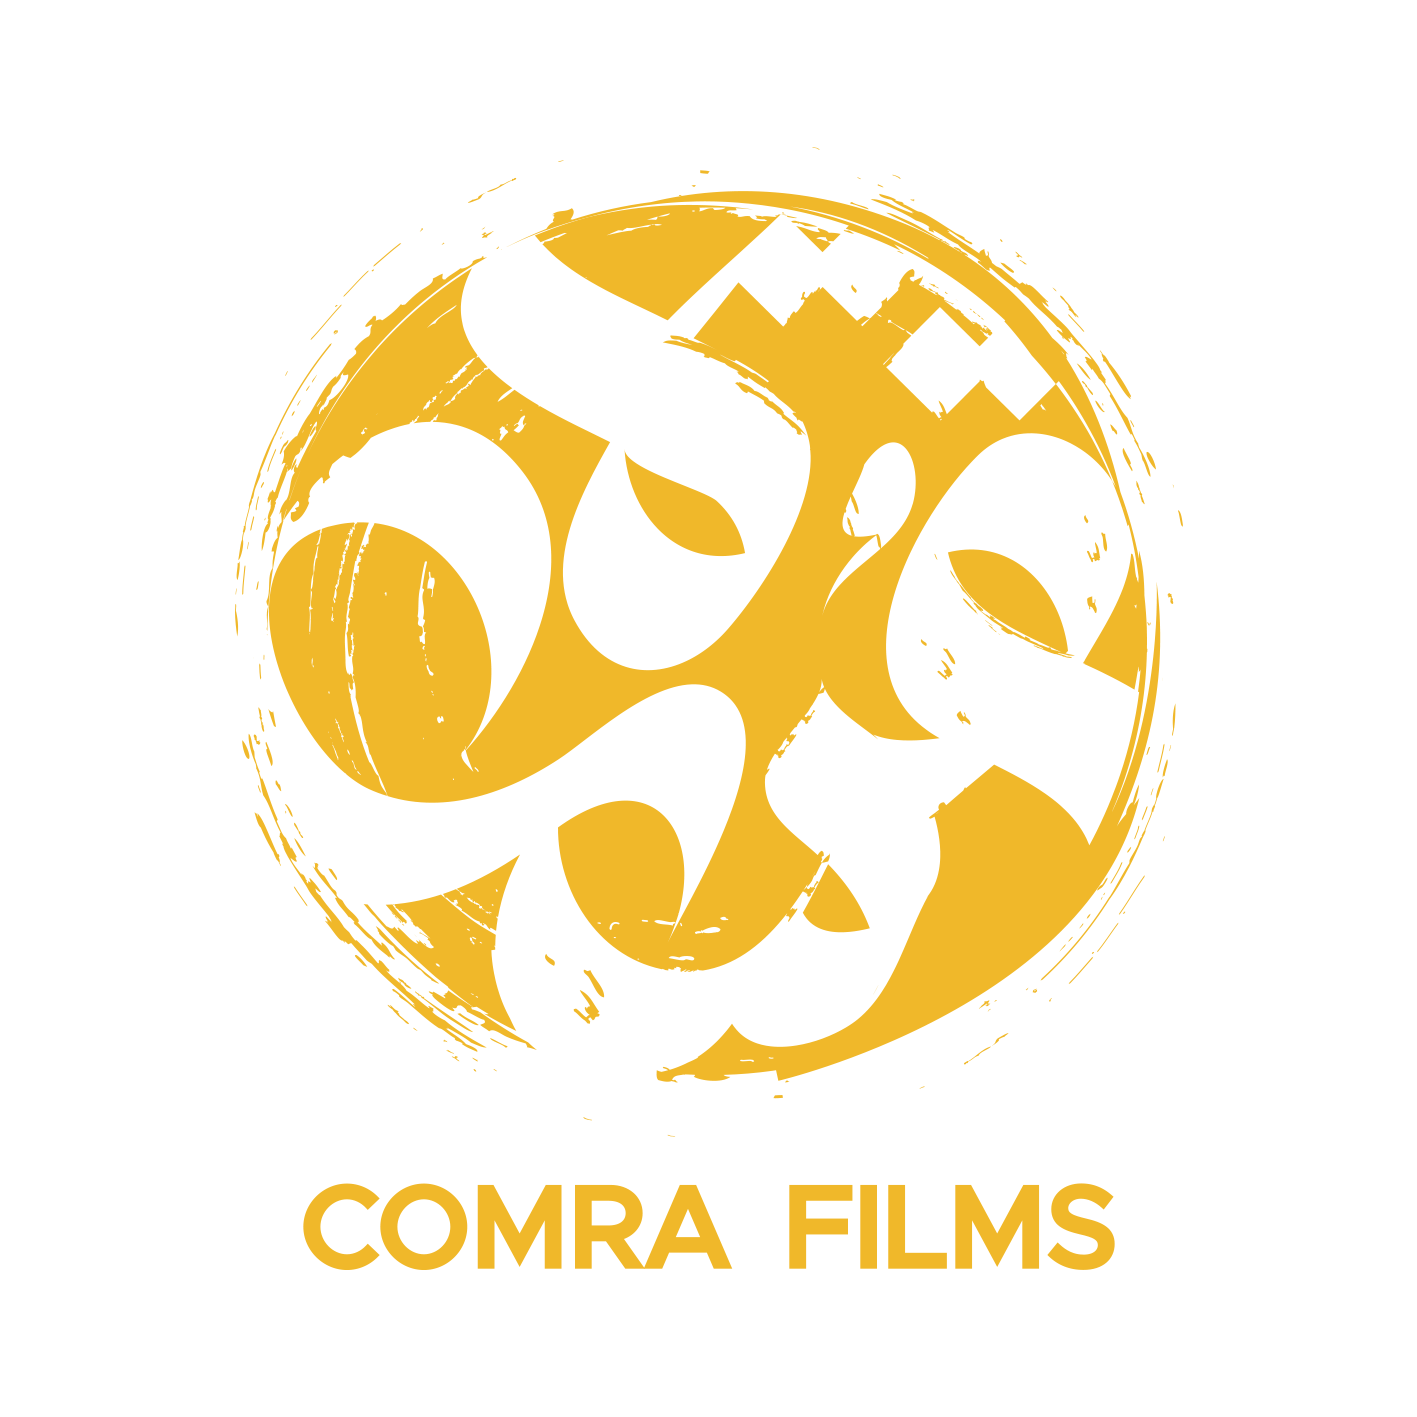 https://swanstage.com/wp-content/uploads/2020/12/Comra-Films-logo.png